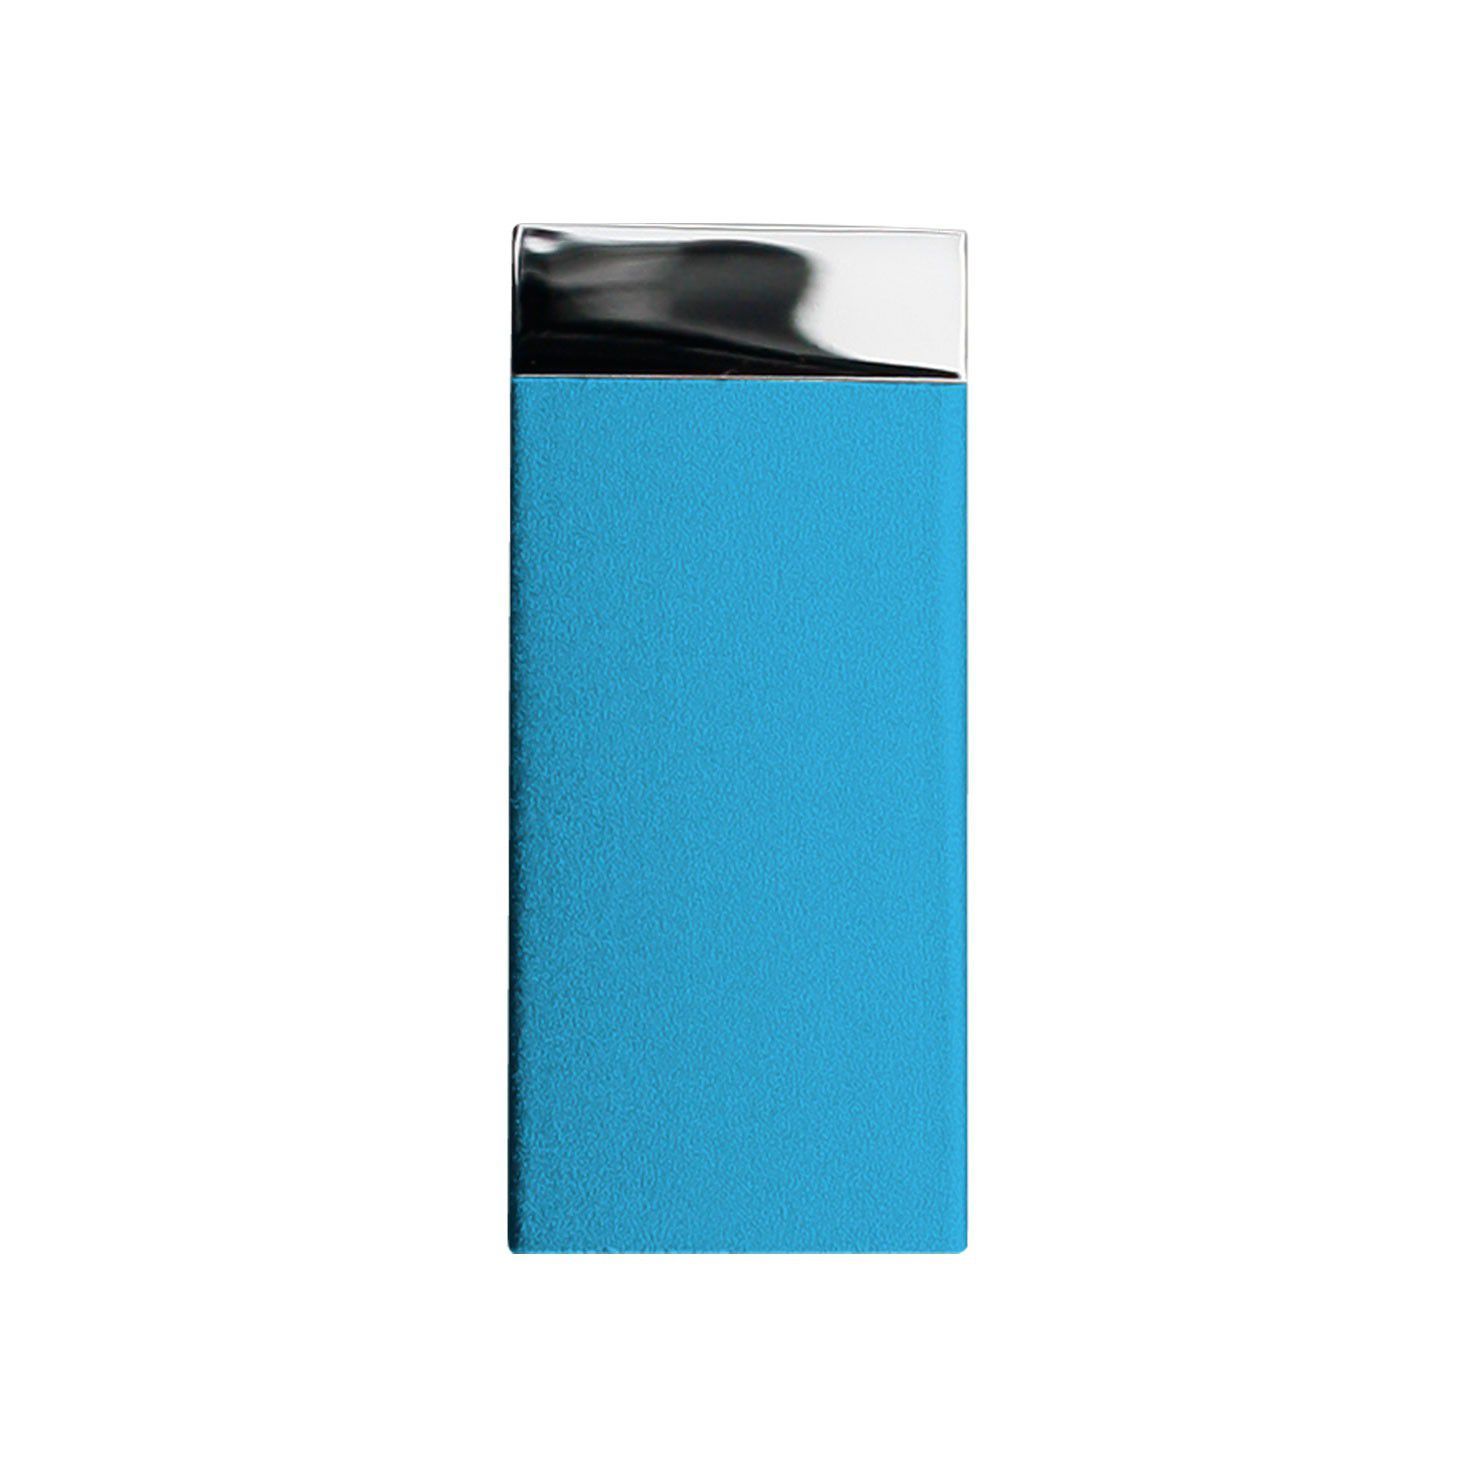 Blauwe USB stick design 2GB